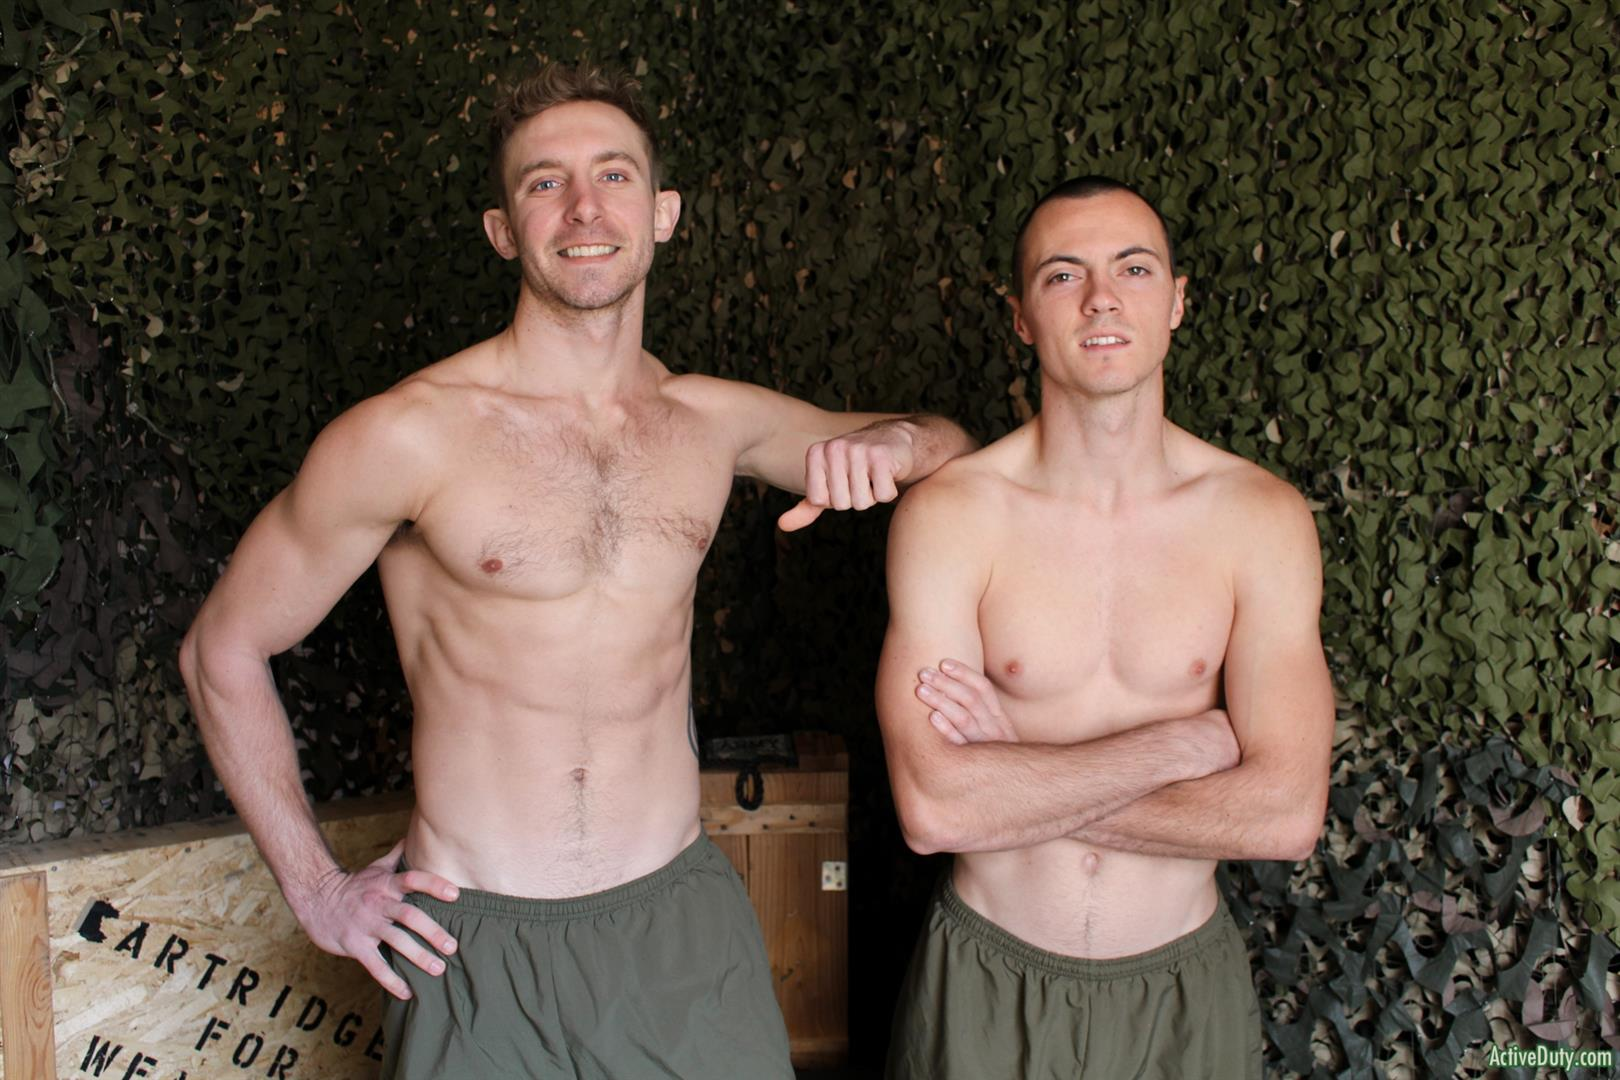 Active-Duty-and-Tyler-Love-and-Ryan-V-Naked-Marine-Buddys-Bareback-Fucking-Gay-Sex02 Straight Marine Buddies Like To Secretly Have Bareback Sex